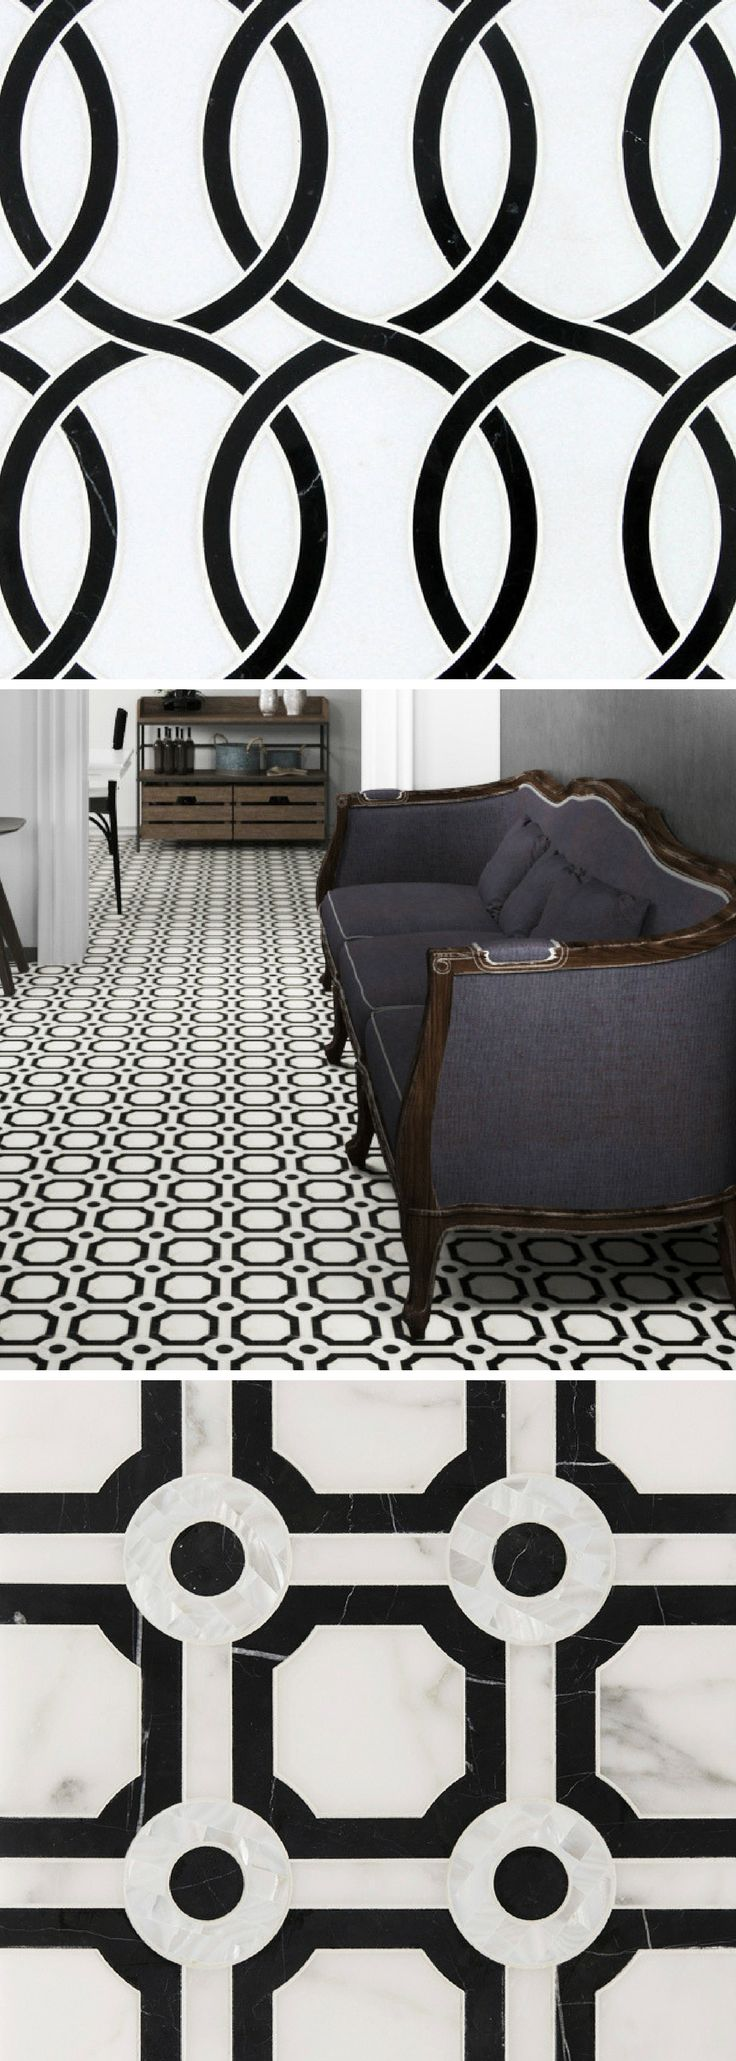 Black and white mosaic tile / inspired by the Art Nouveau movement, our Belle Epoque collection perfectly marries contrast and shape. See it all on our website